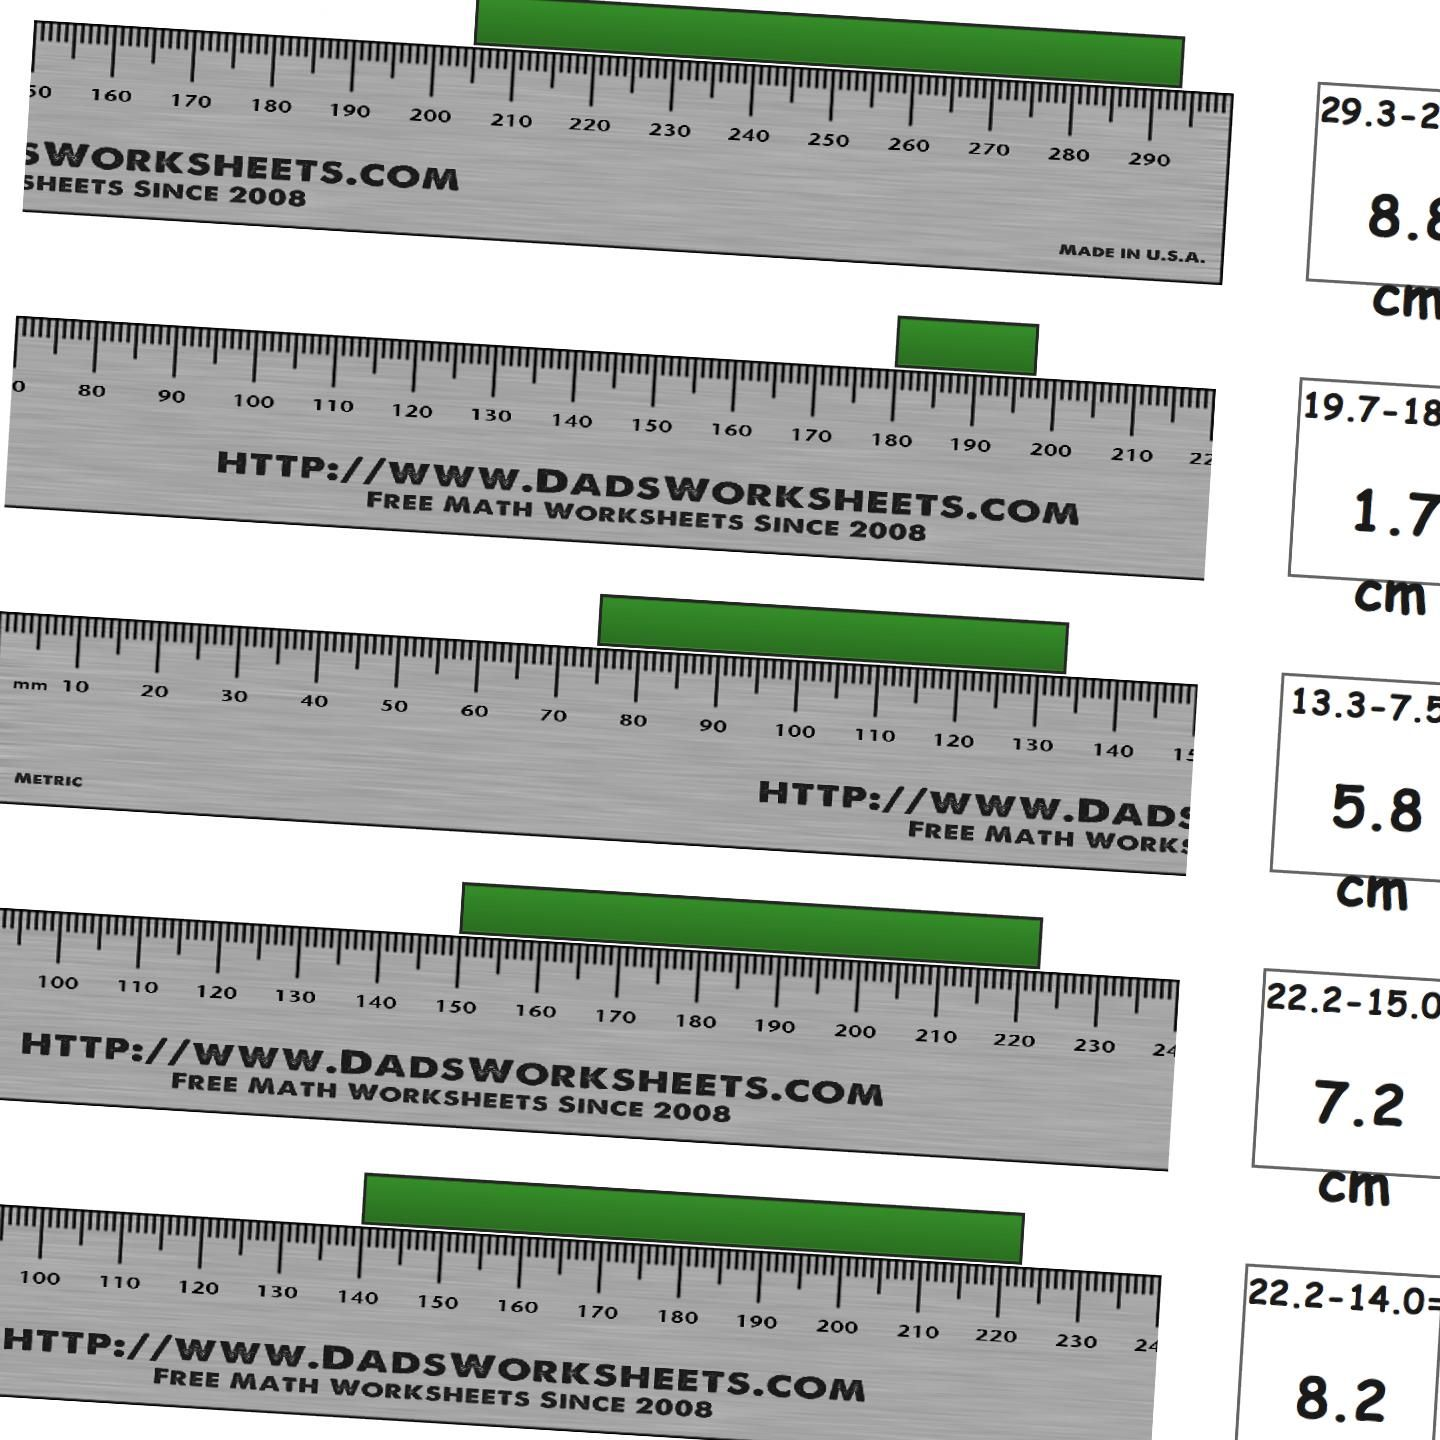 Worksheets For Measuring Length On A A Metric Ruler From